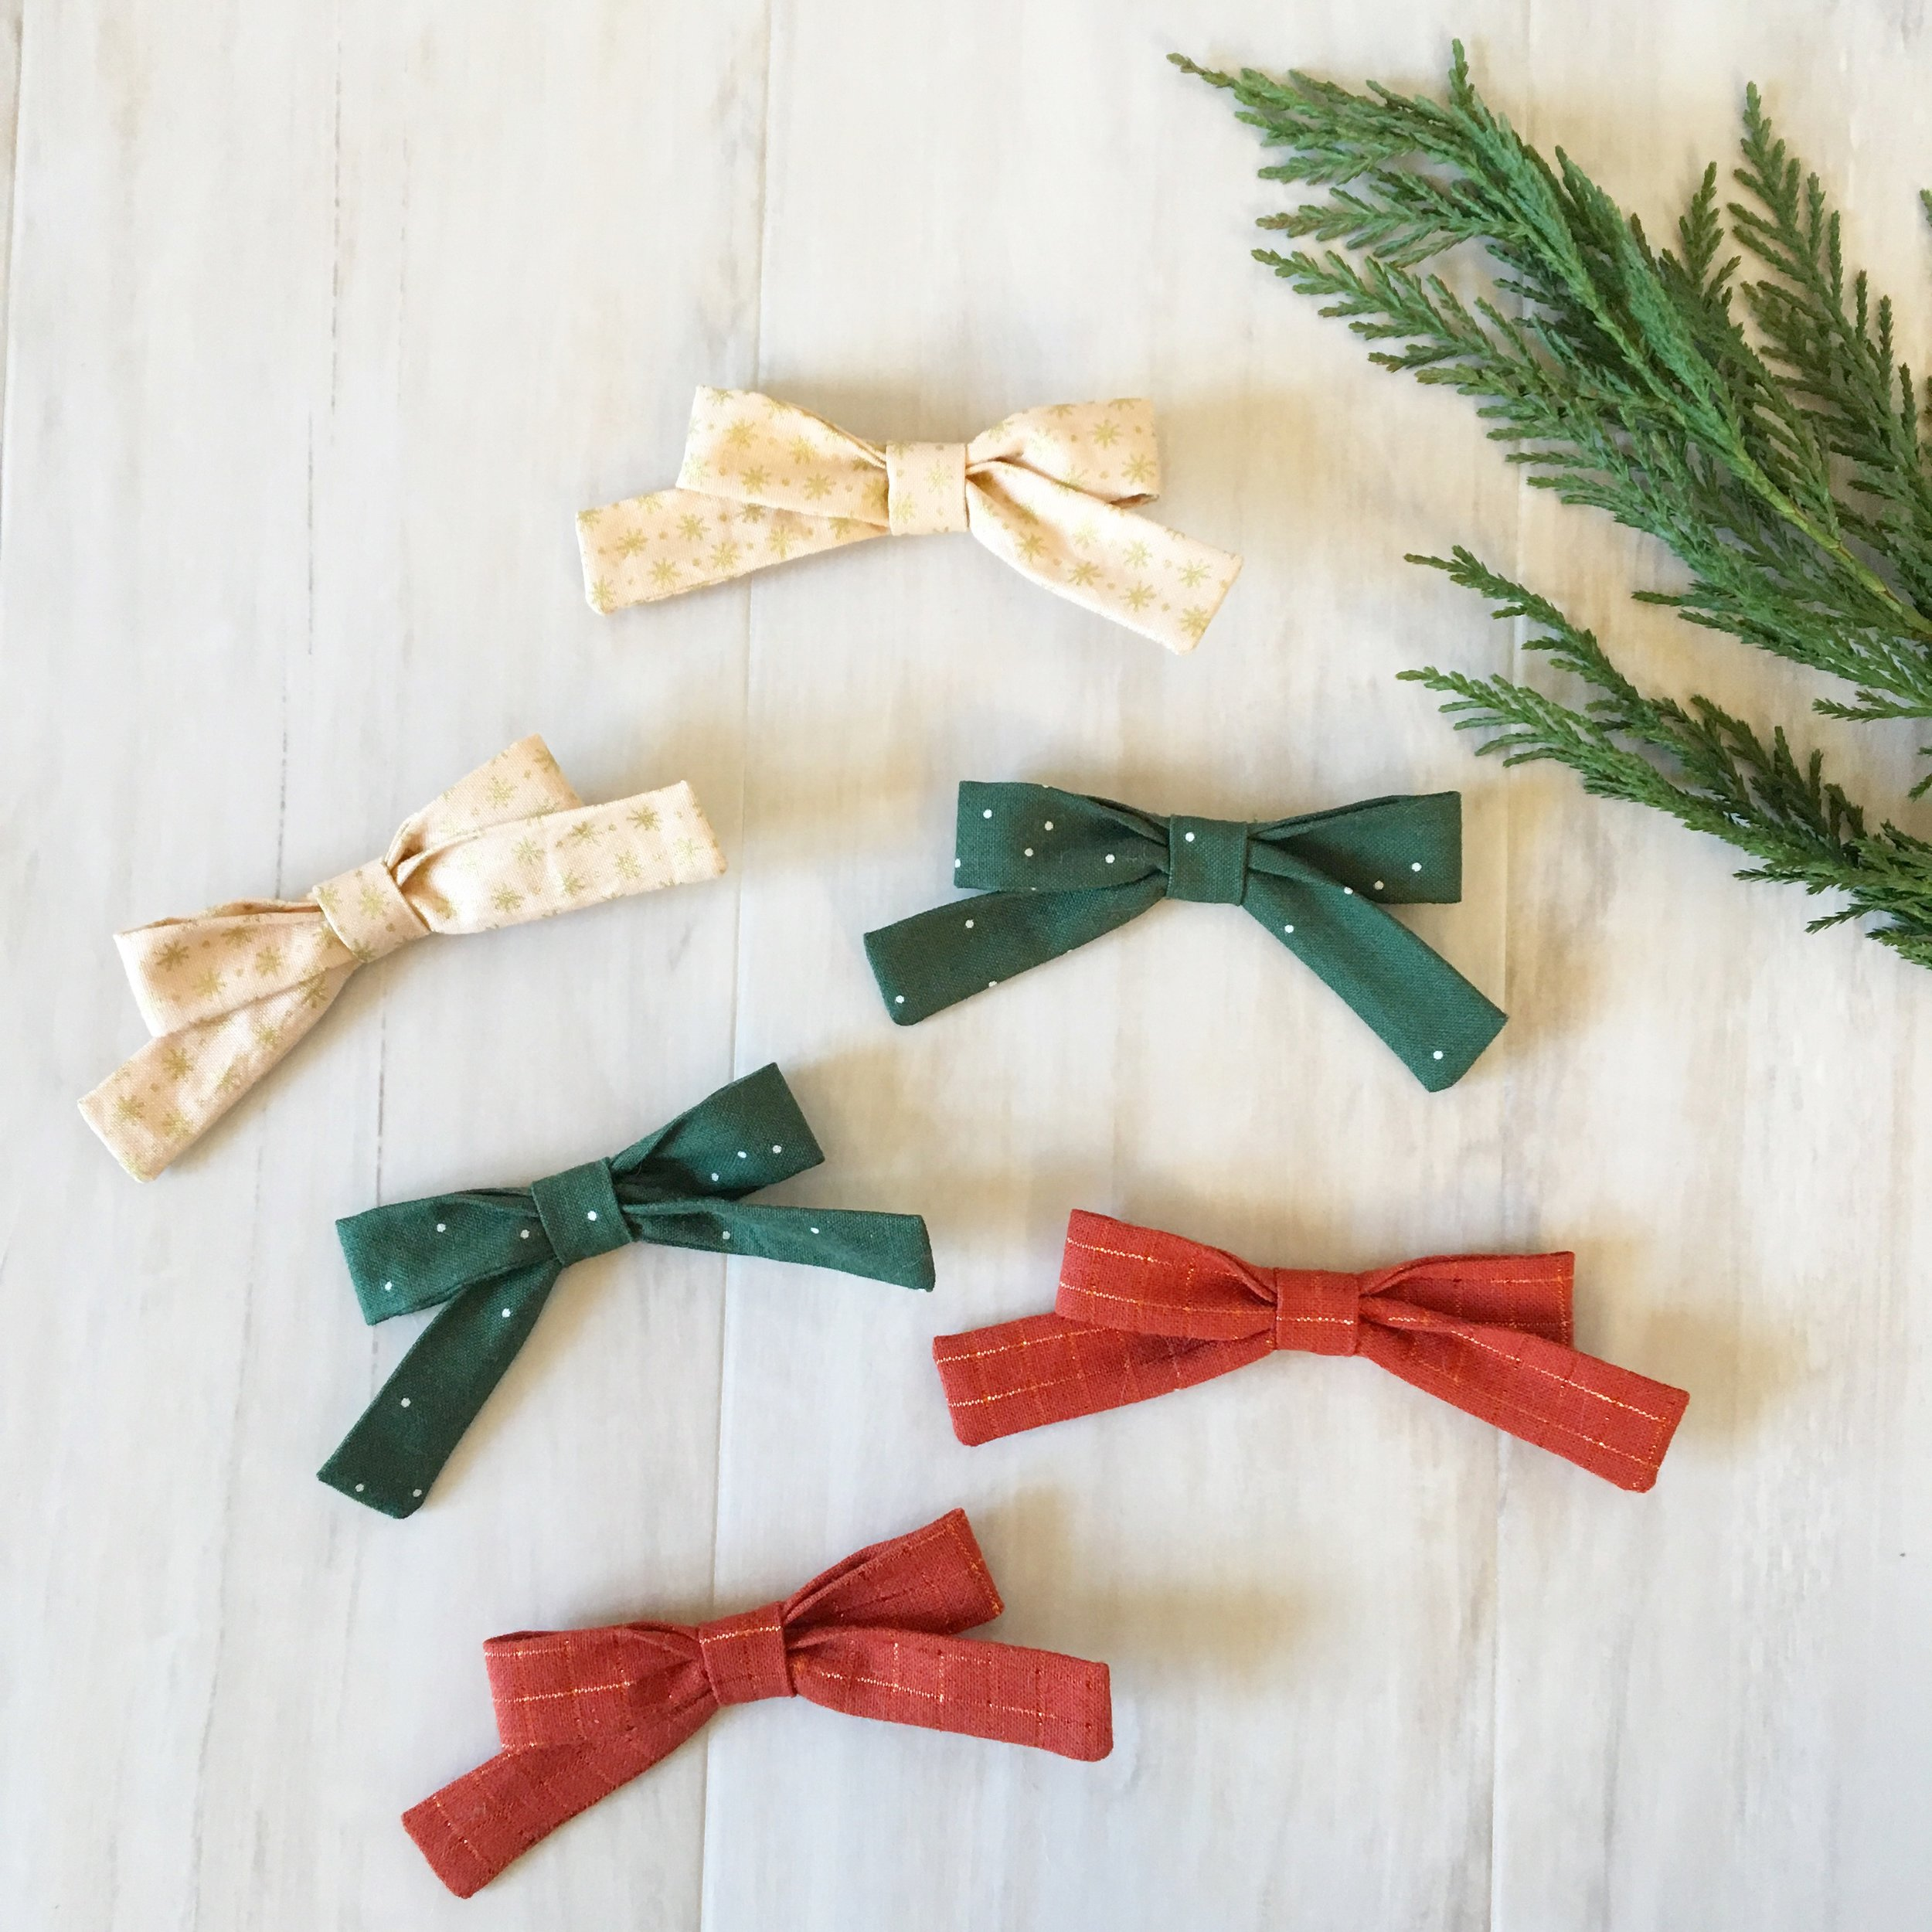 Classic Hair Bows and Top-Knot Headwraps - $10  CLICK ON IMAGE TO PURCHASE!